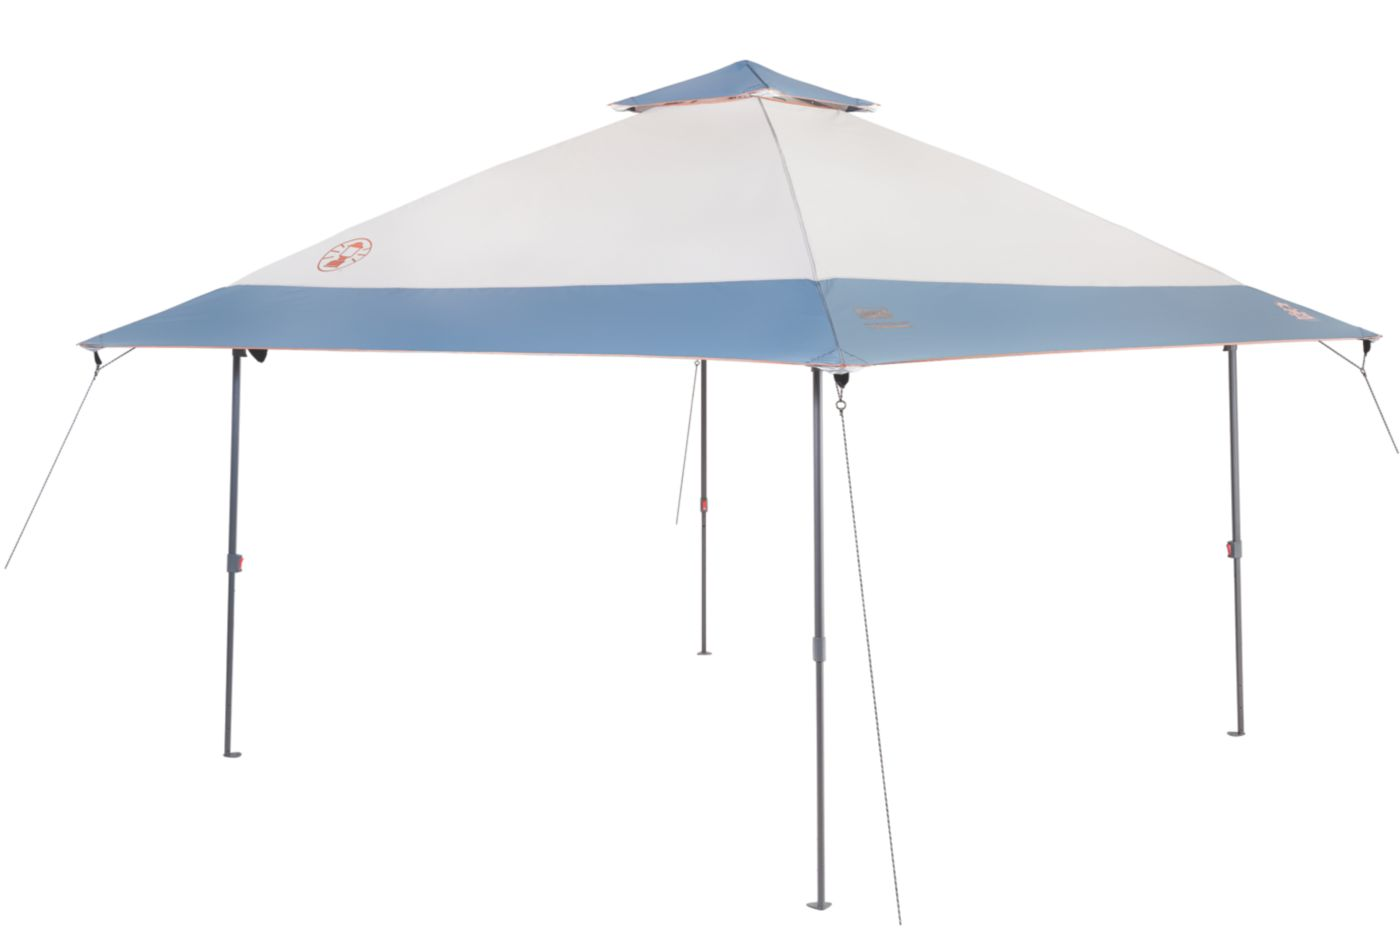 ... All Night™ 13 x 13 Instant Lighted Eaved Shelter image 1 ...  sc 1 st  Coleman & All Night™ 13 x 13 Instant Lighted Eaved Shelter | Coleman